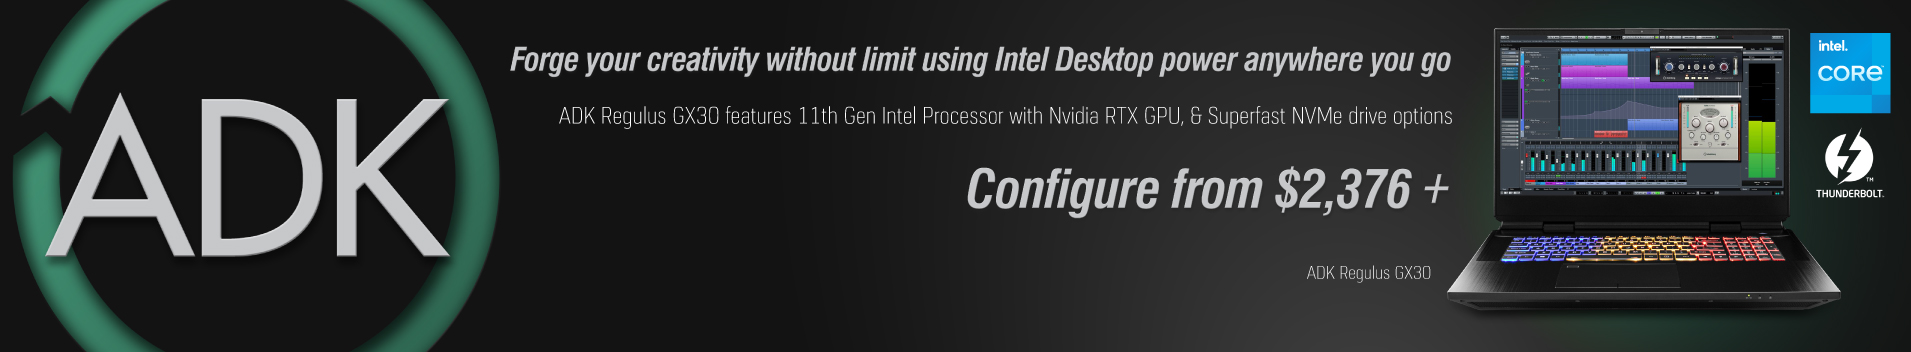 ADK Regulus GX30 features 11th Gen Intel Processor with Nvidia RTX GPU, & Superfast NVMe drive options